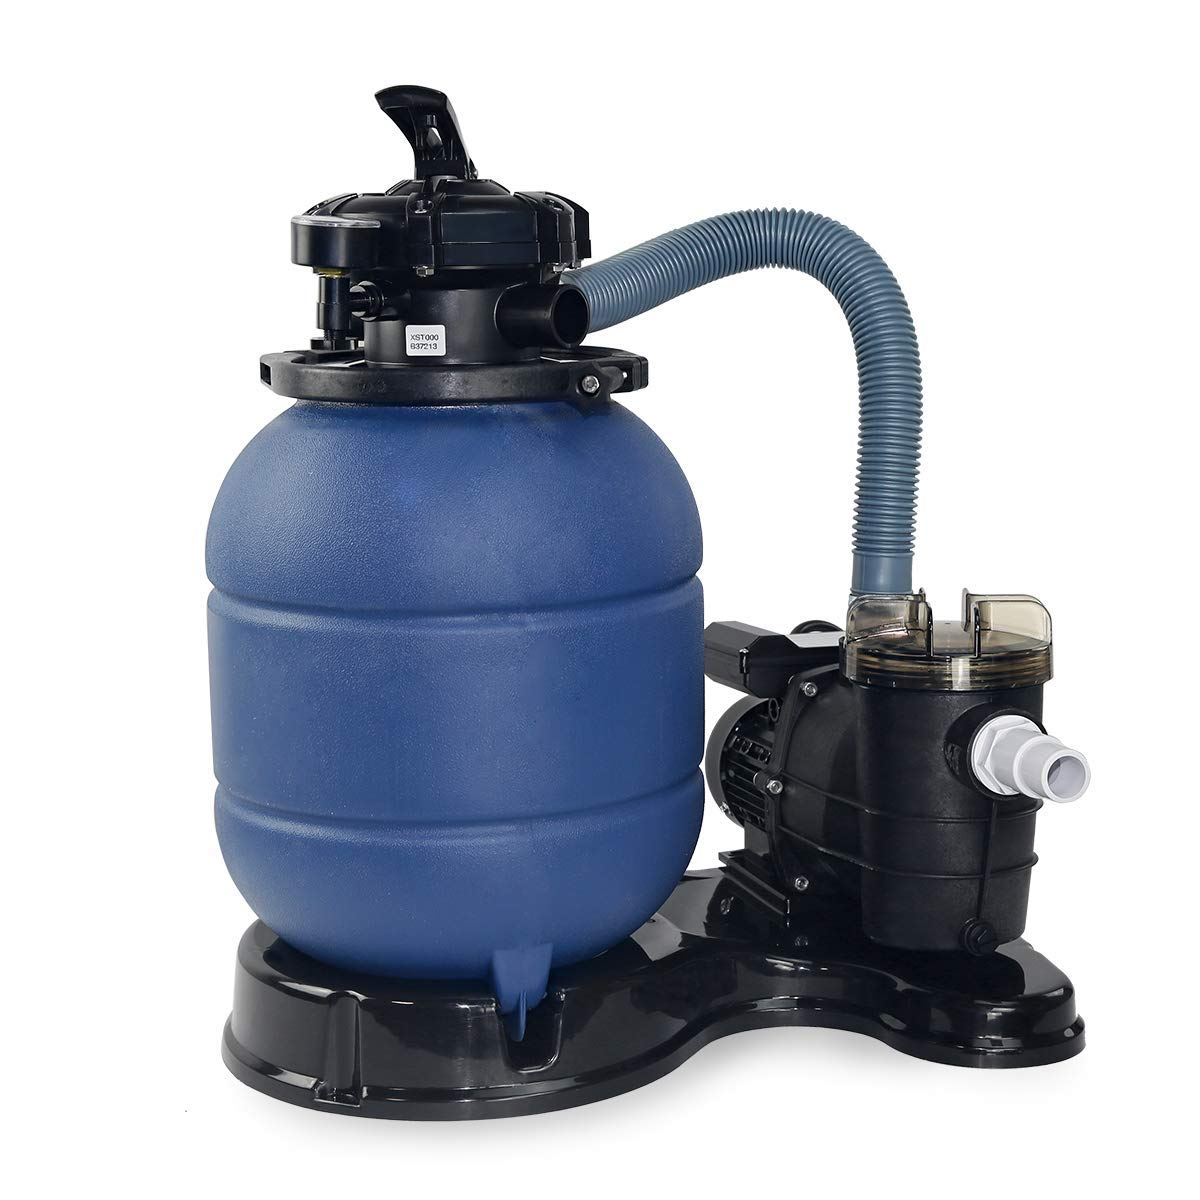 legendary-Yes Pro 2400GPH 13 Inch Sand Filter w/ 3/4HP Water Pump Above Ground Swimming Pool Pump by legendary-Yes